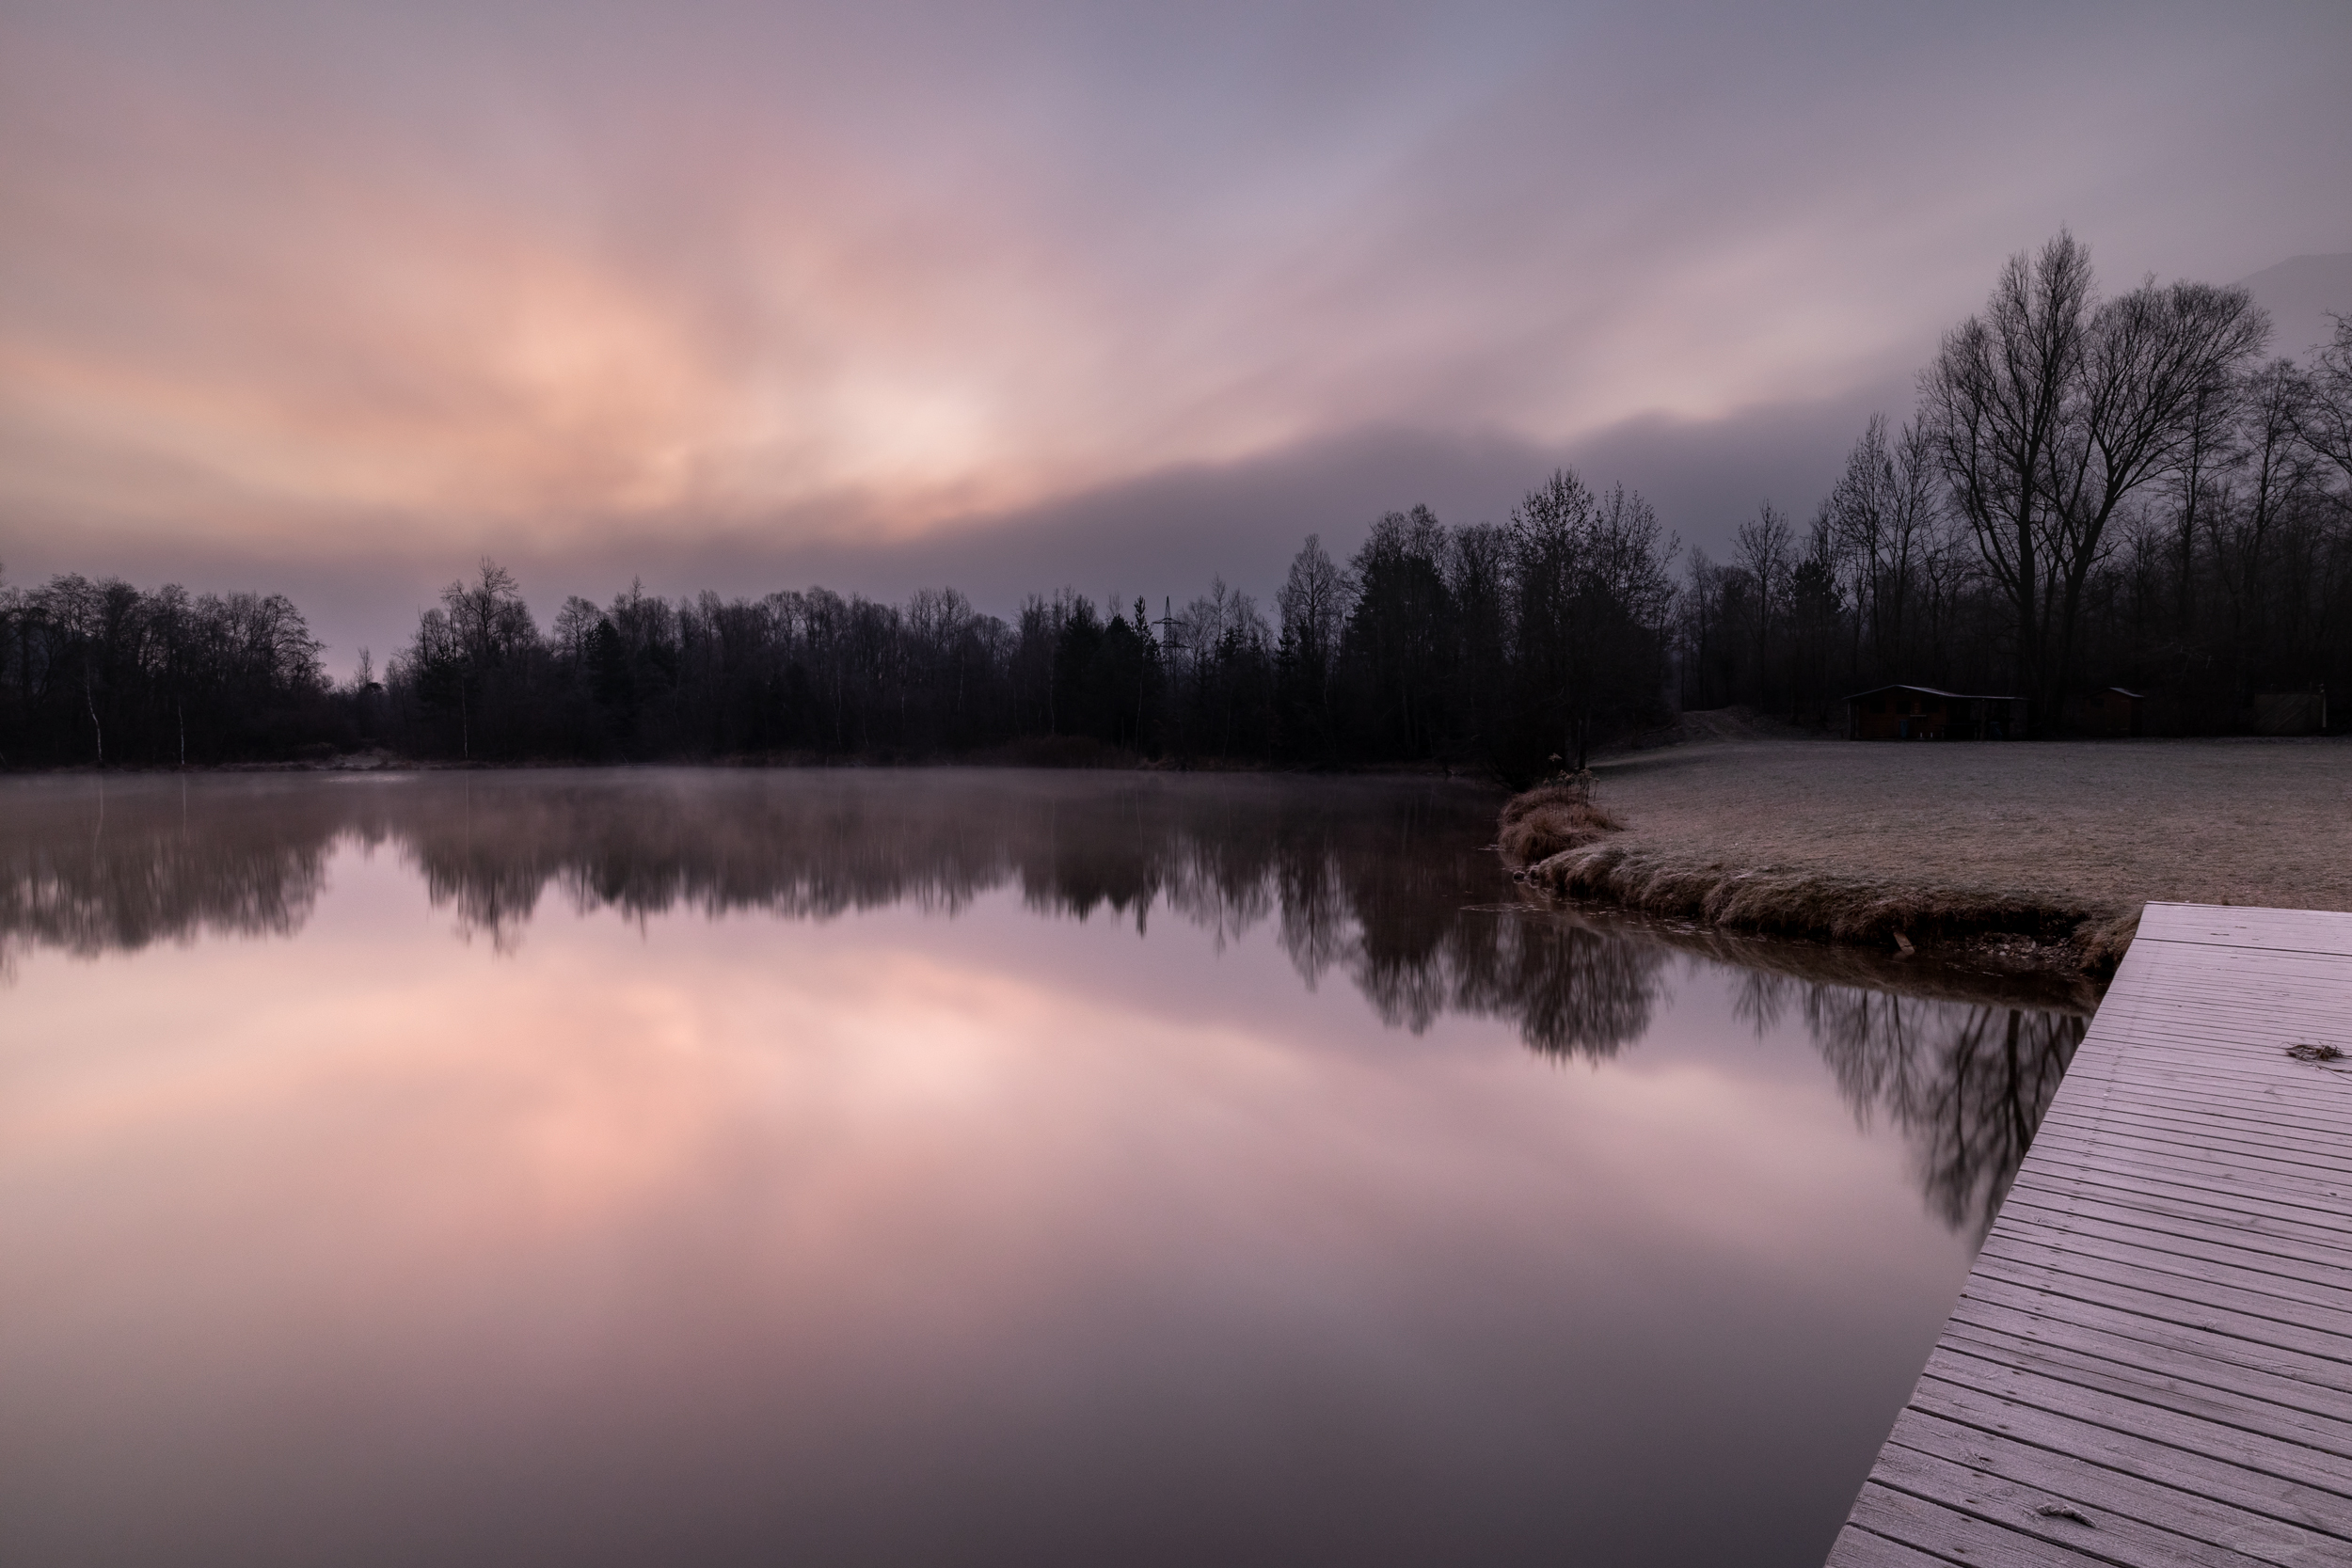 Just before Sunrise - Linsendorfer See - Lake Linsendorf